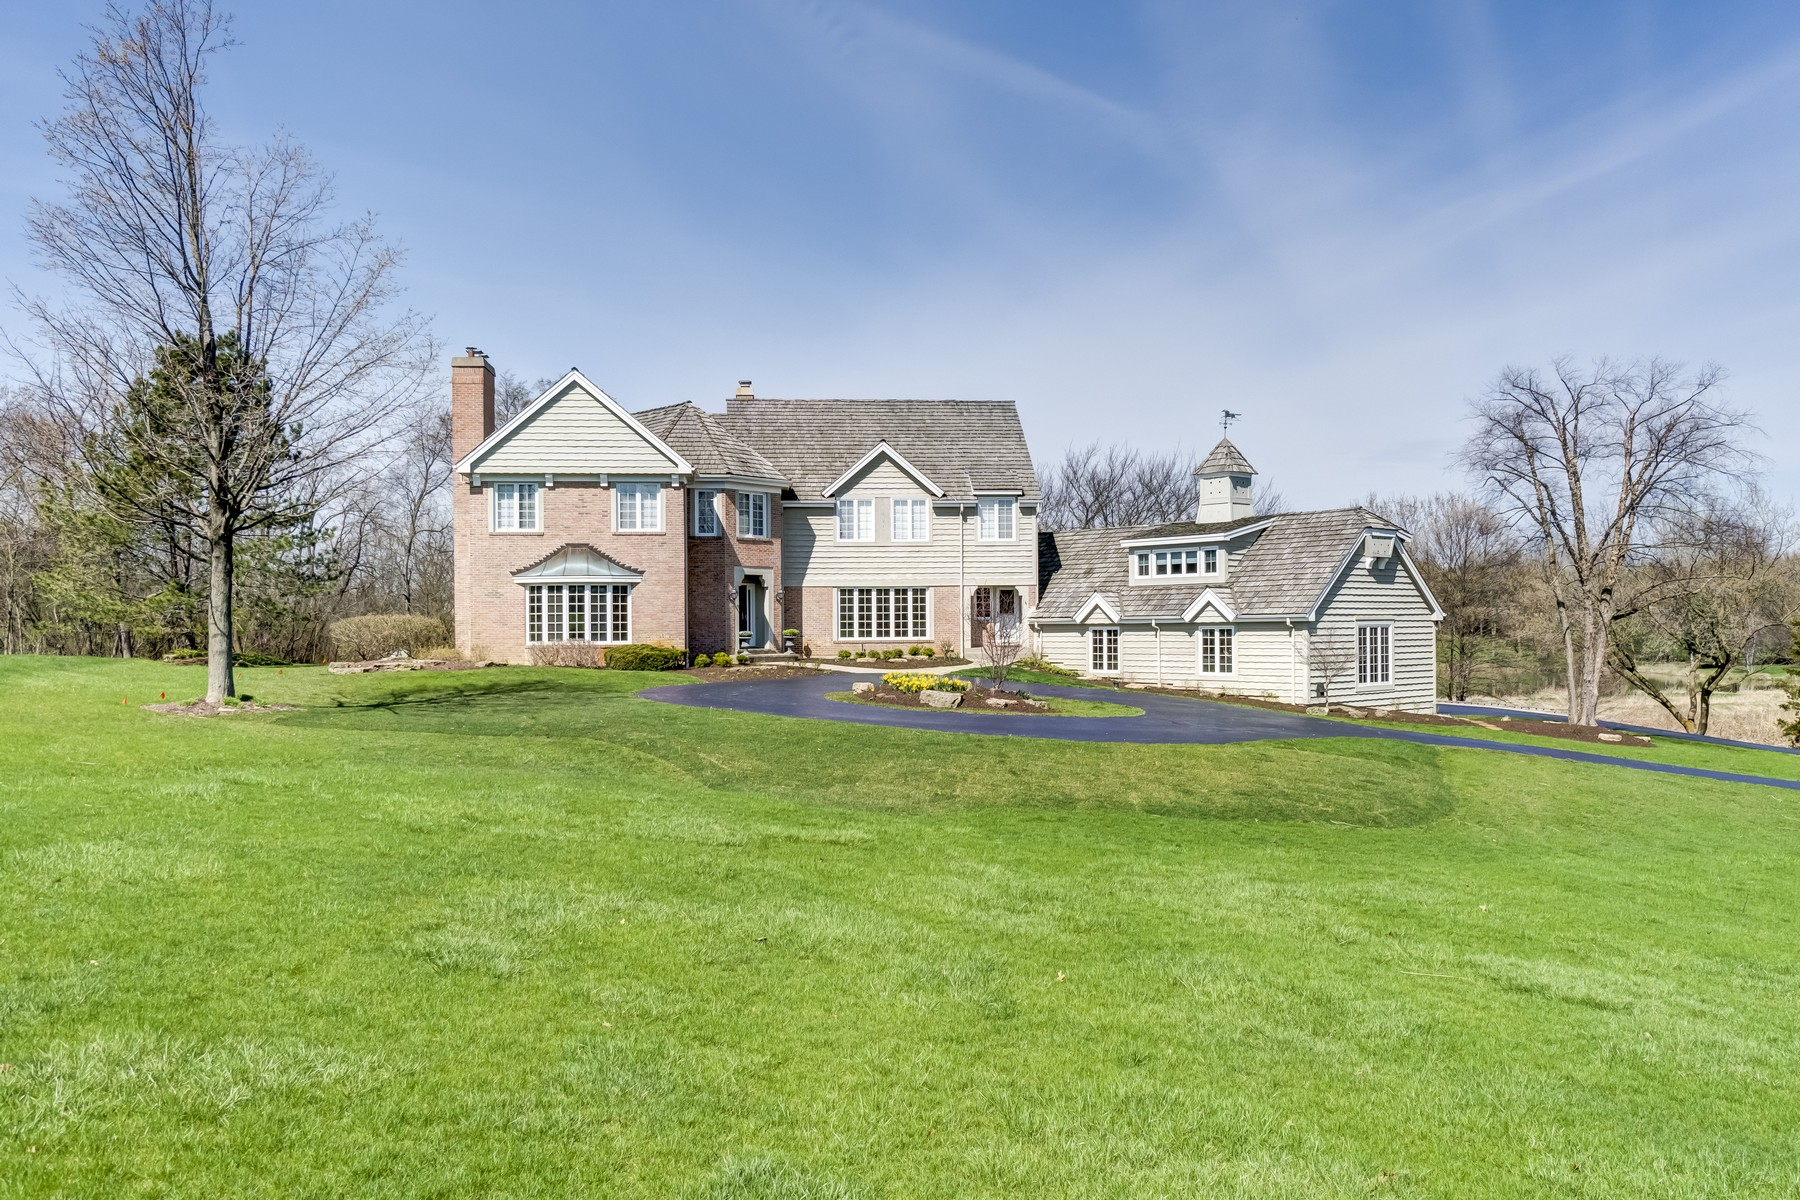 Single Family Home for Sale at French Country Retreat 30 Polo Drive South Barrington, Illinois 60010 United States